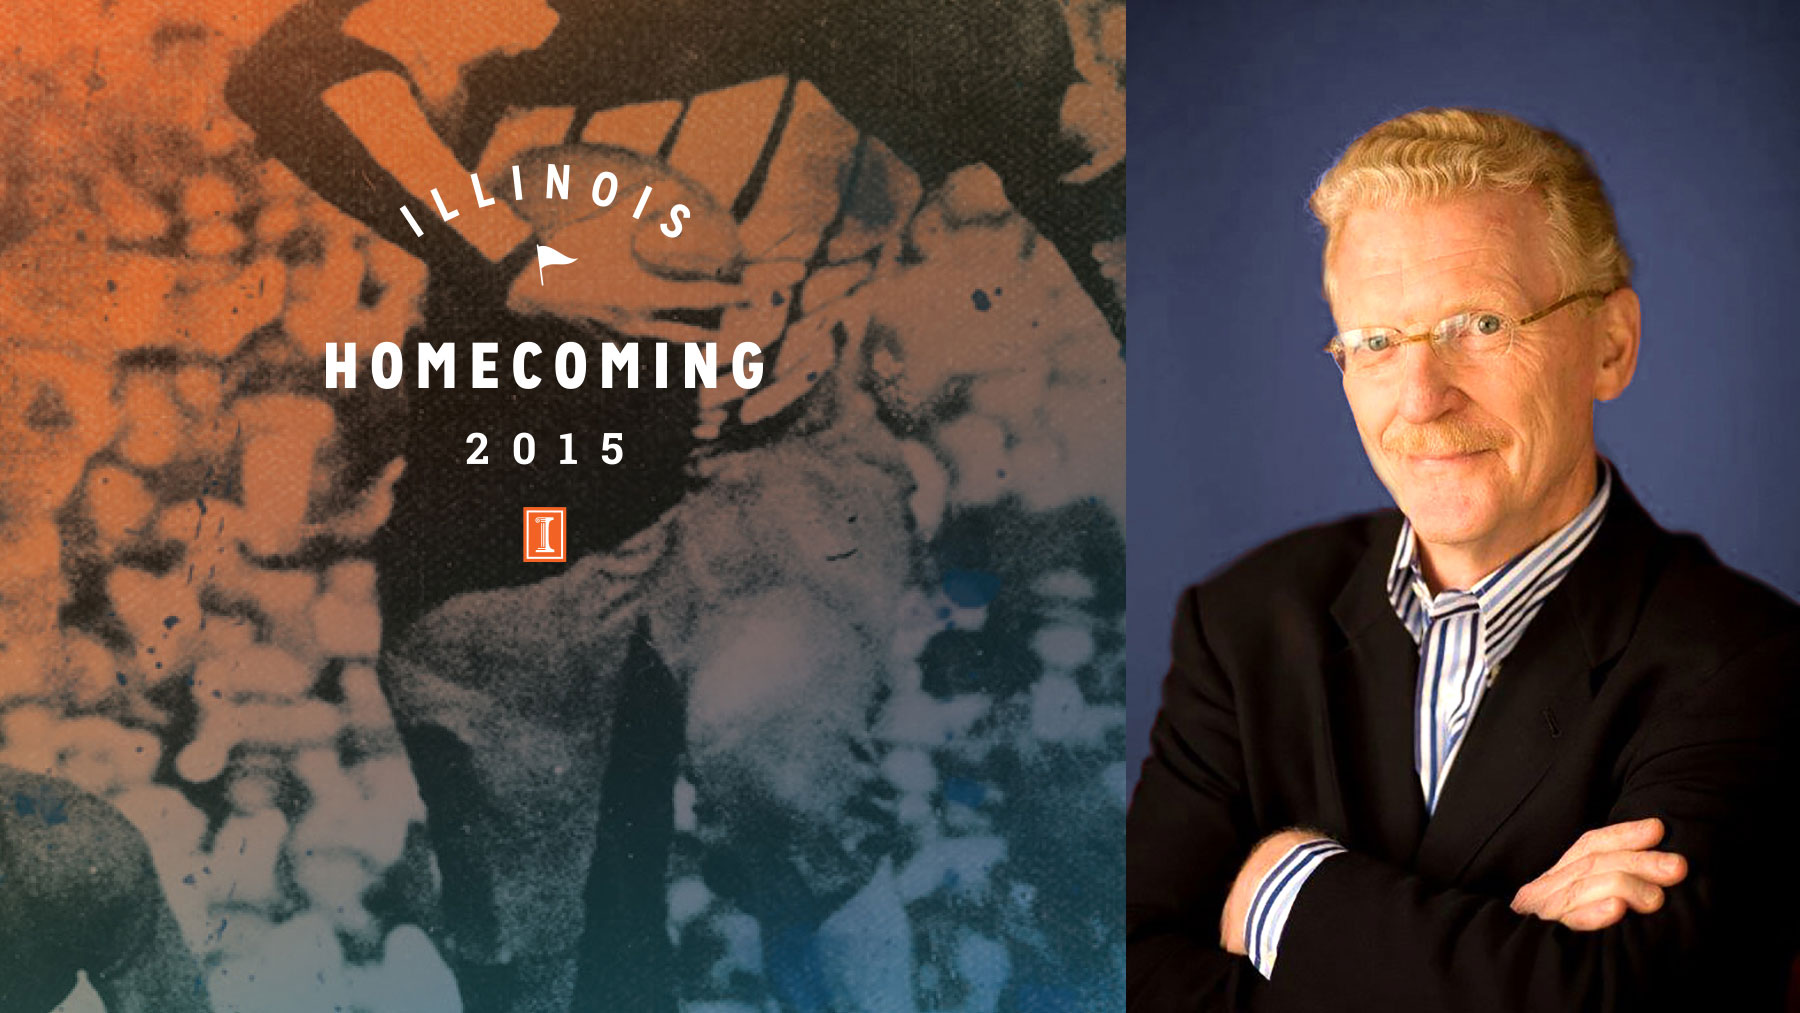 image of bill geist with homecoming graphic